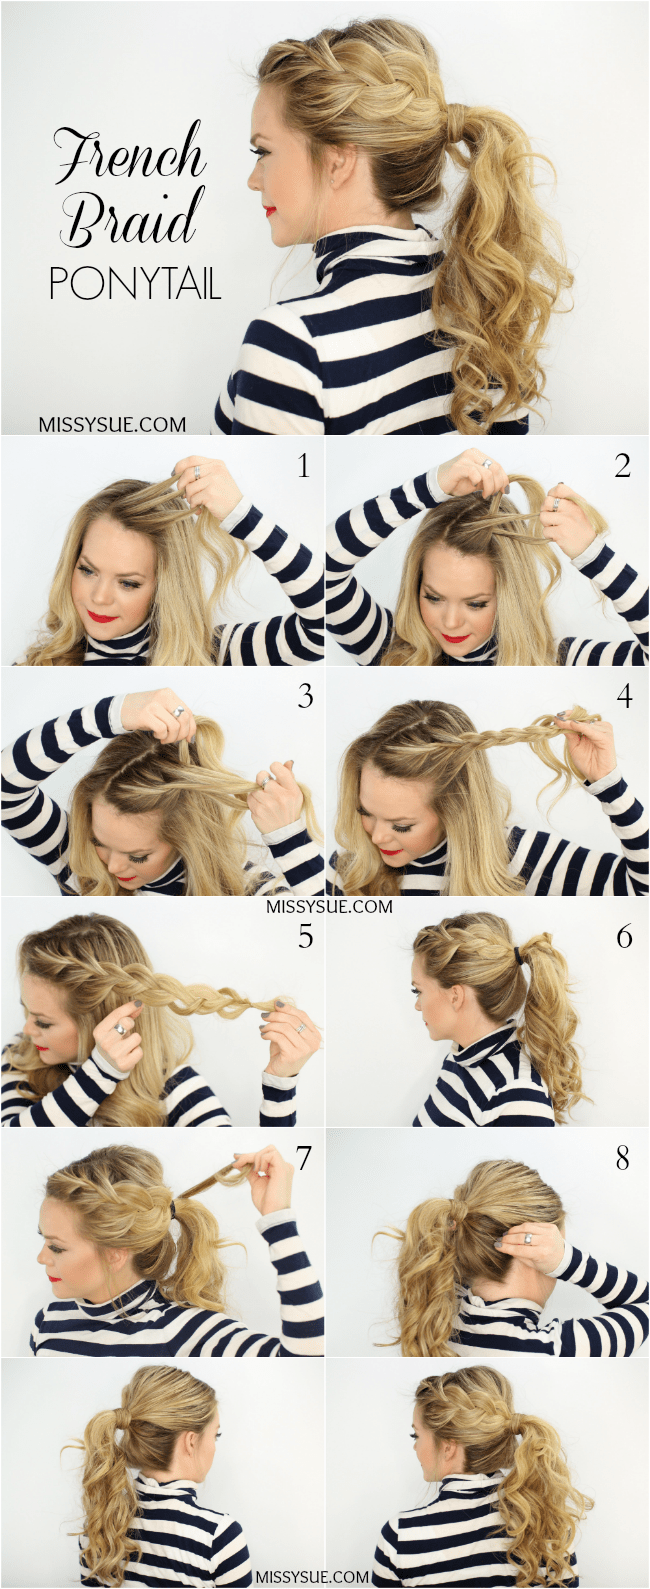 Side french braid ponytail solutioingenieria Gallery